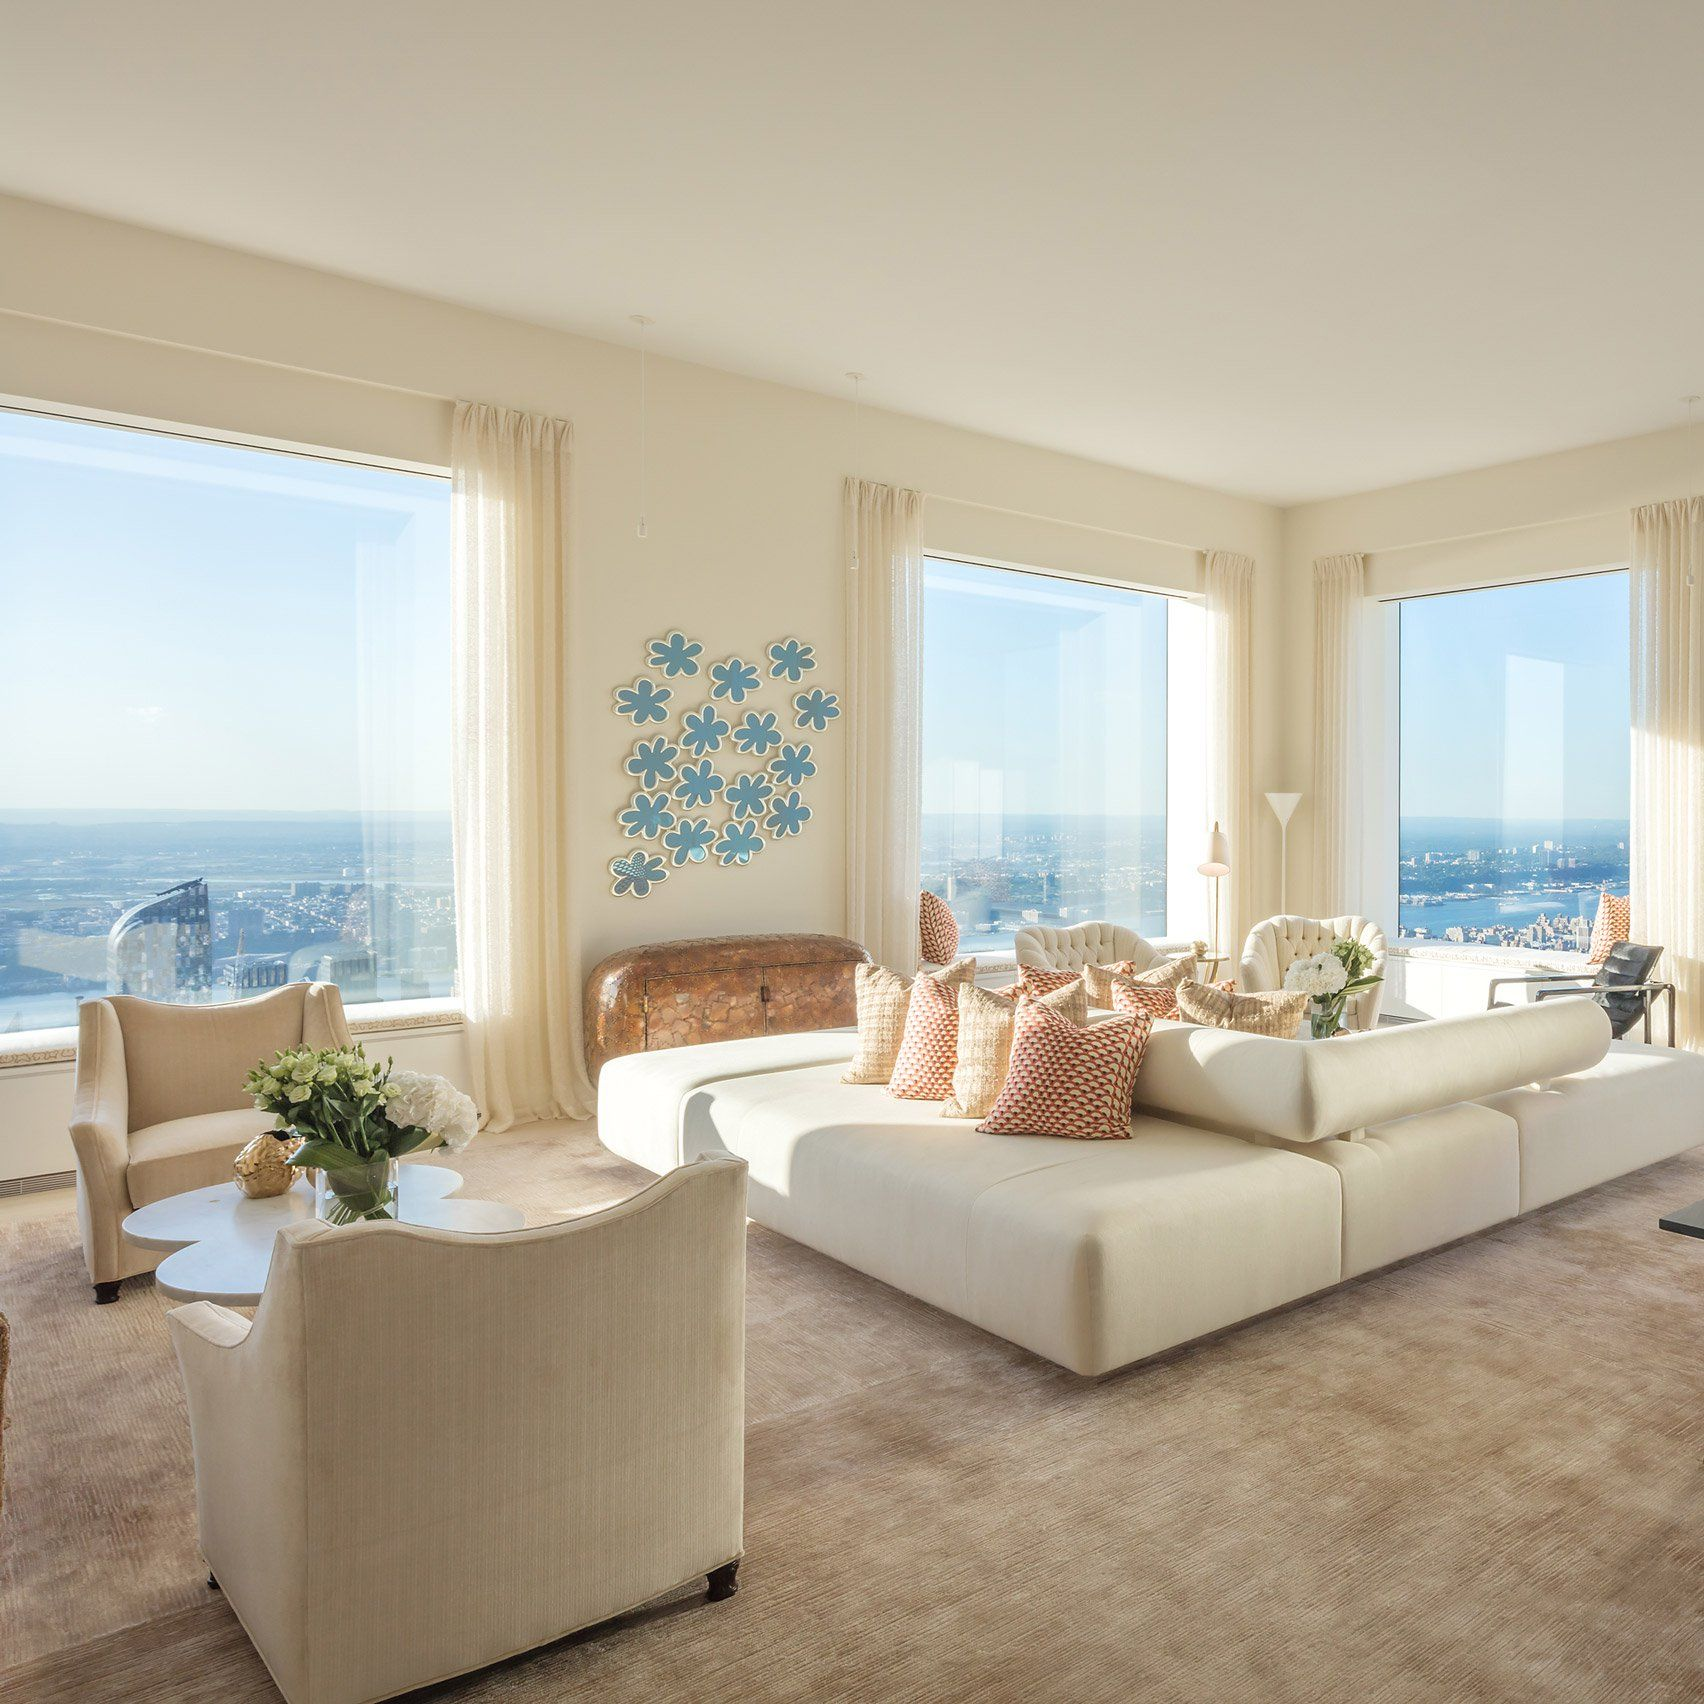 New Condos And Apartments Rise Up Around: Pinterest Roundup: Apartments In High Rises